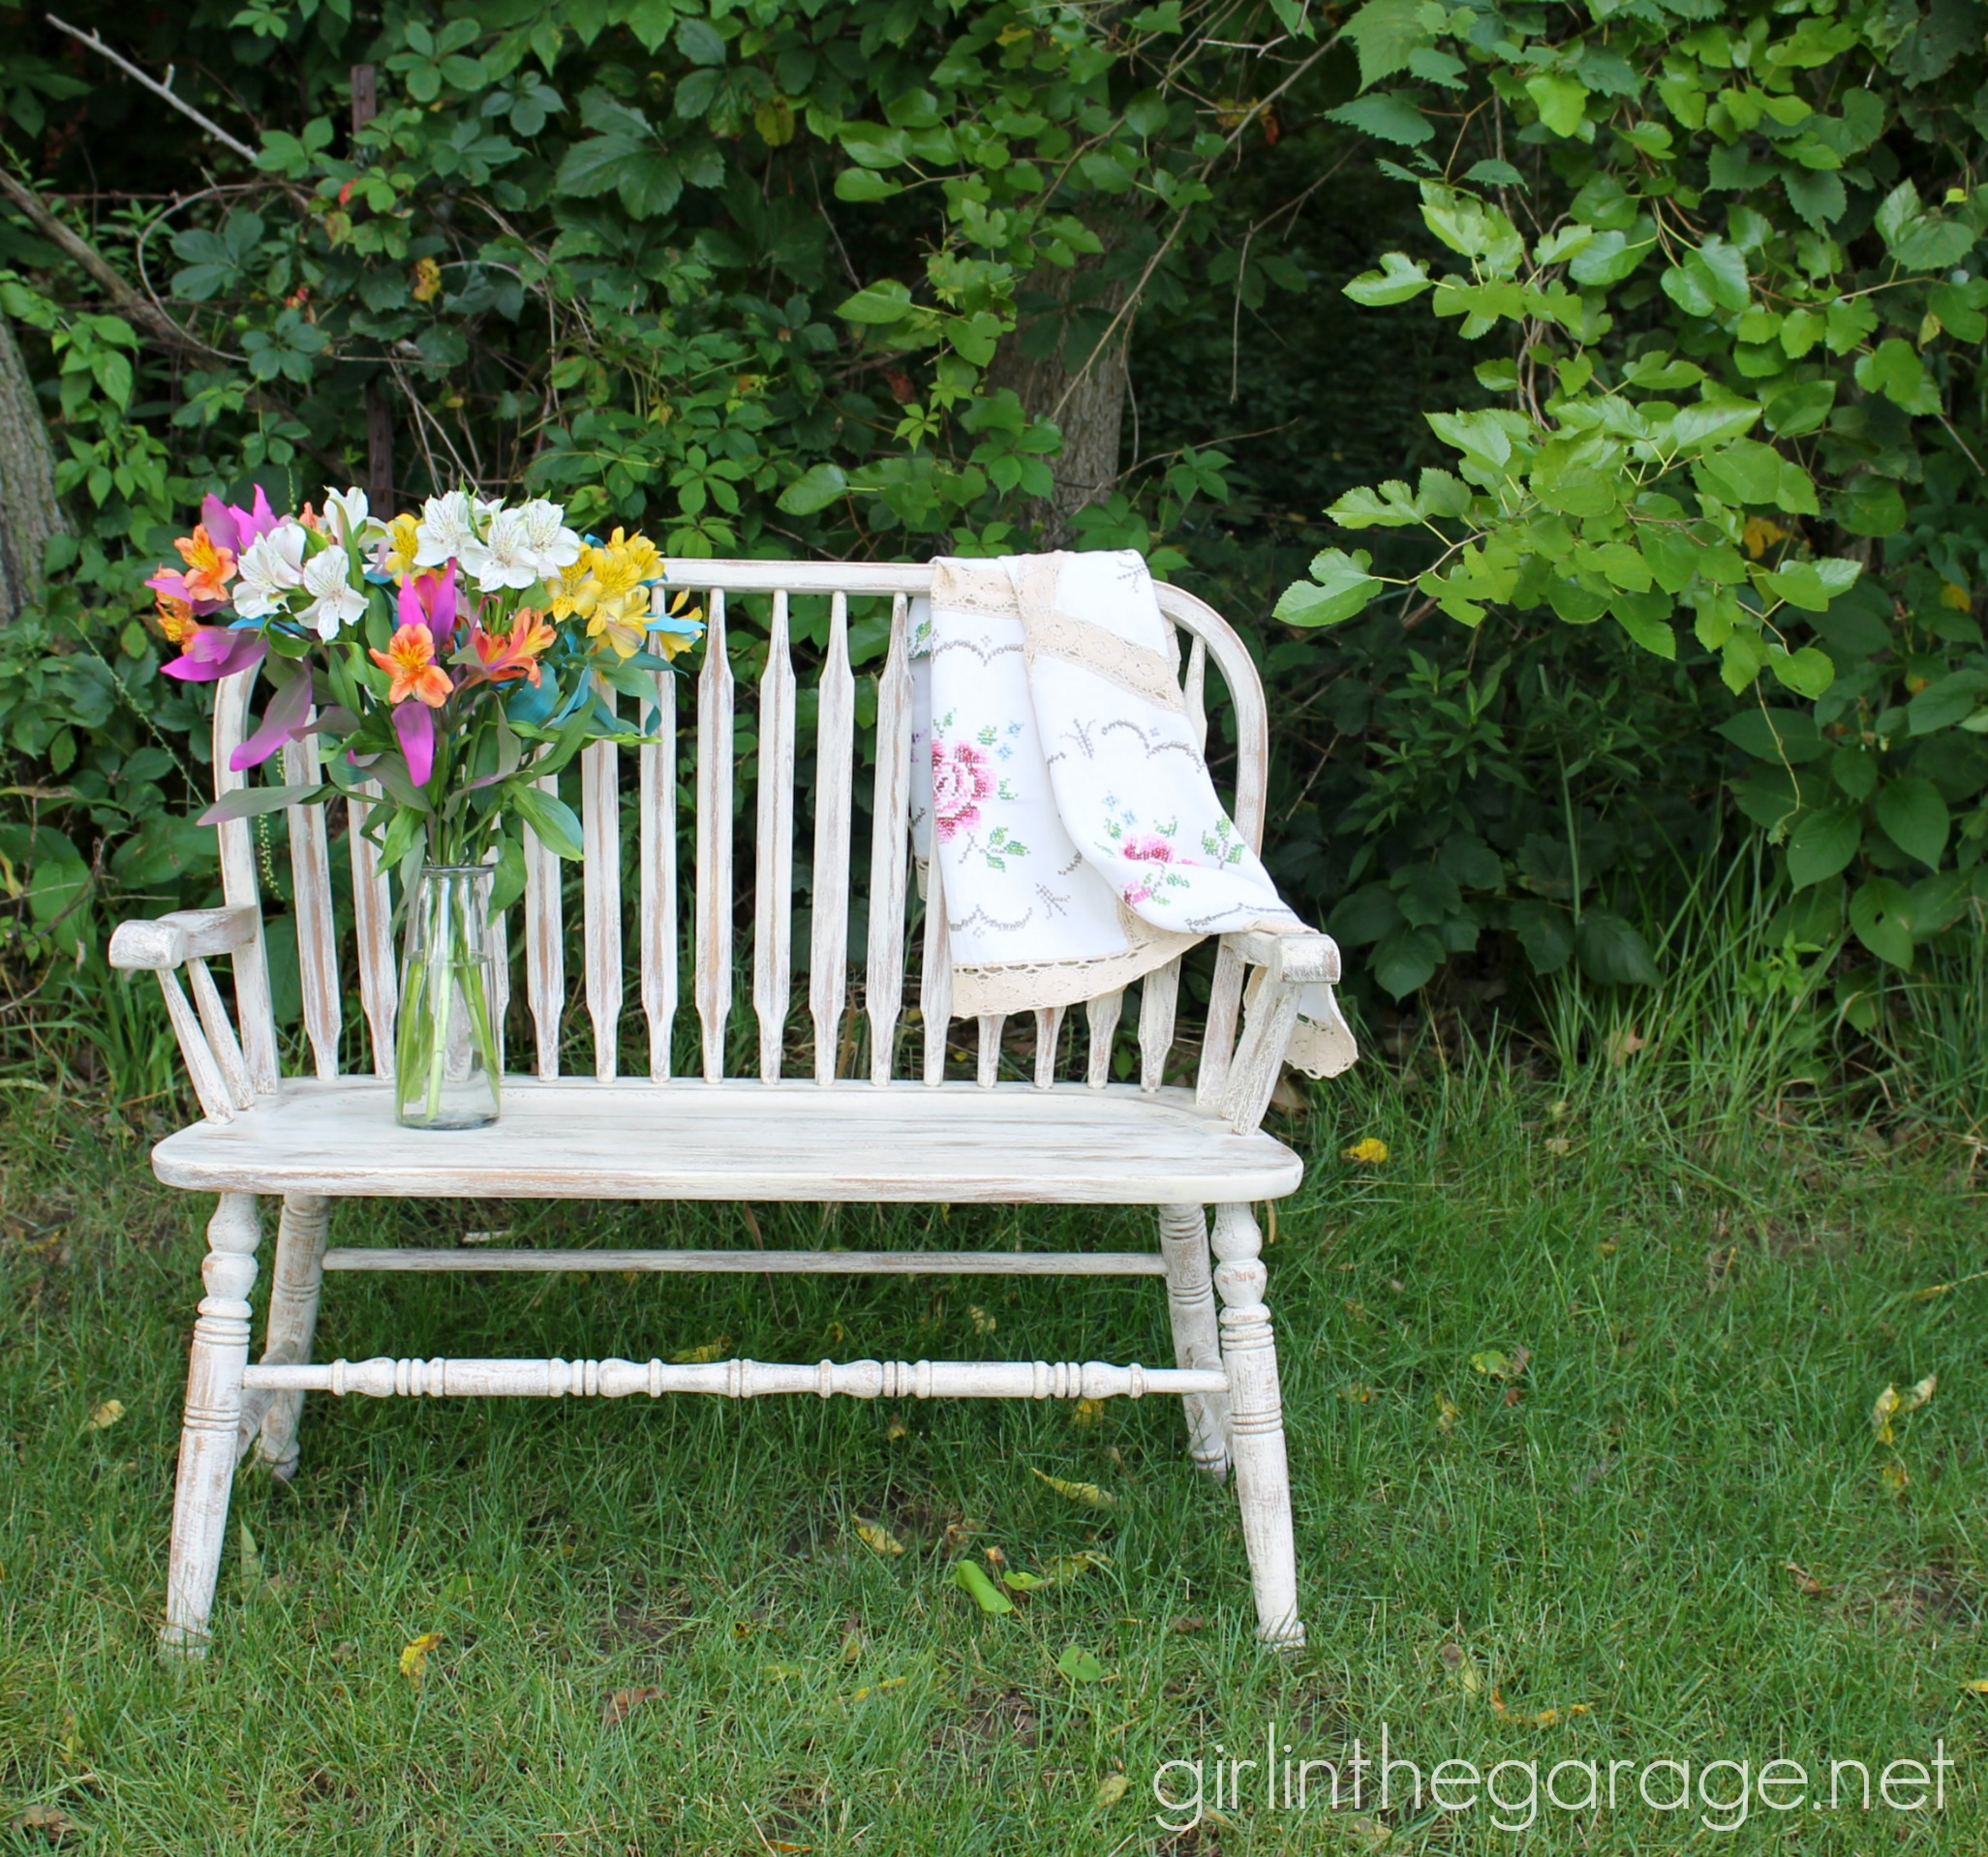 Distressed Weathered Bench Makeover with Chalk Paint - Girl in the Garage